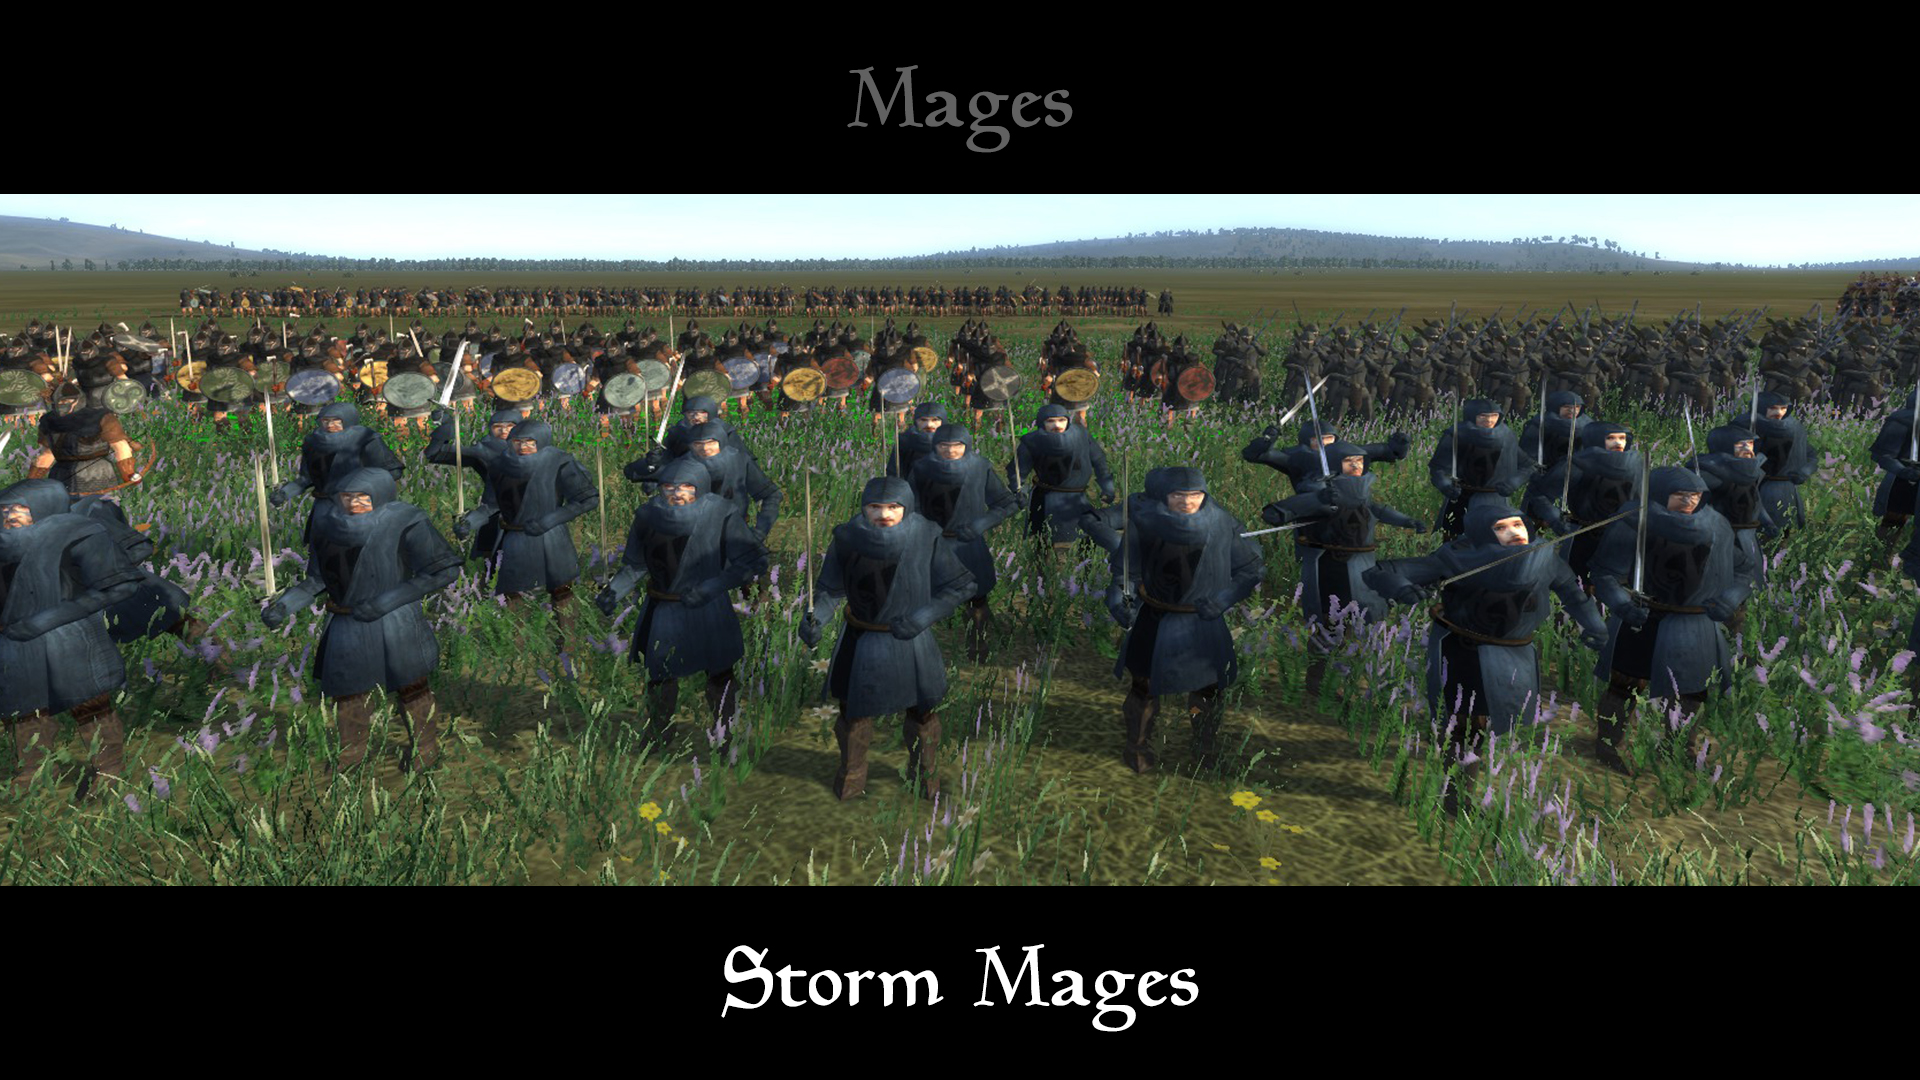 storm mages